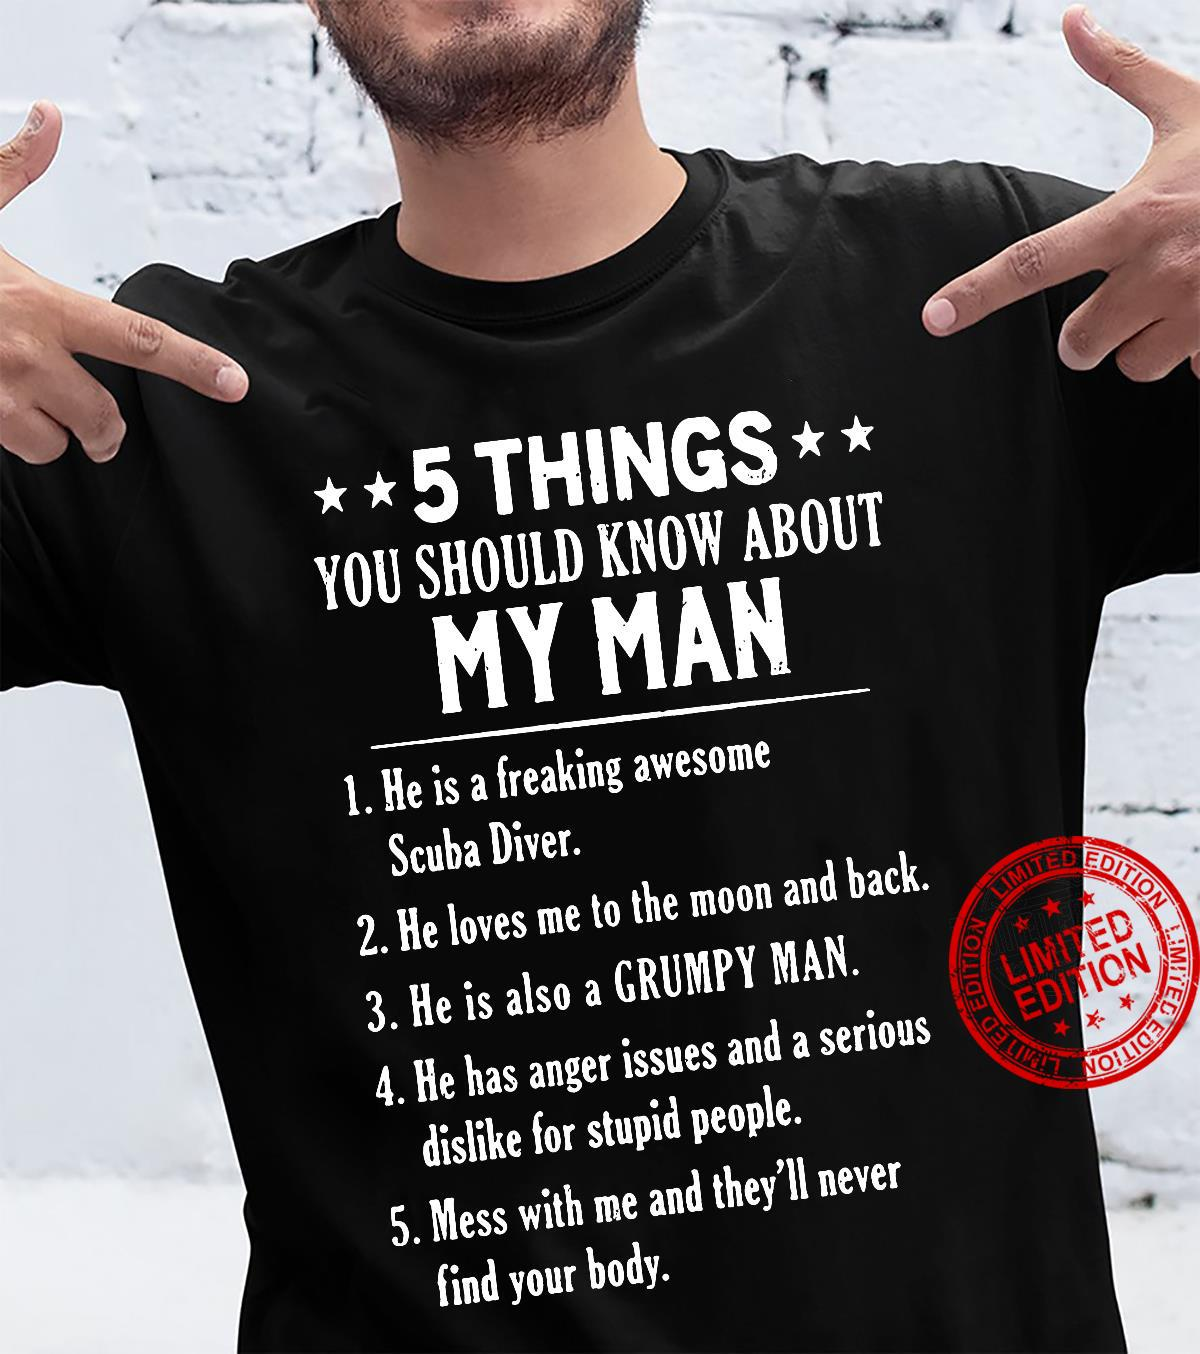 5 Things You Should Know About My Man shirt